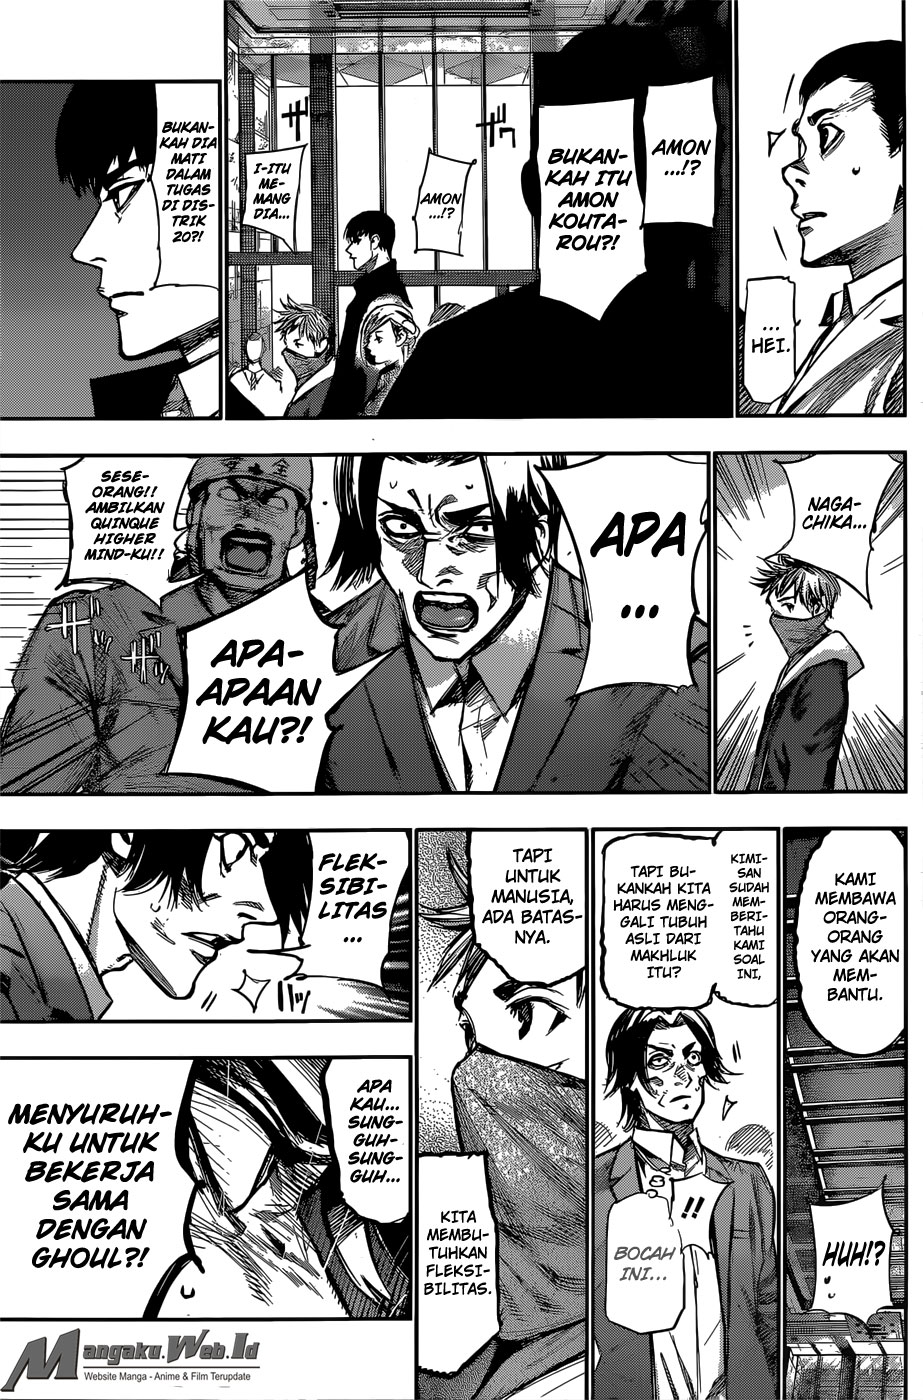 Tokyo Ghoul:re Chapter 150-7